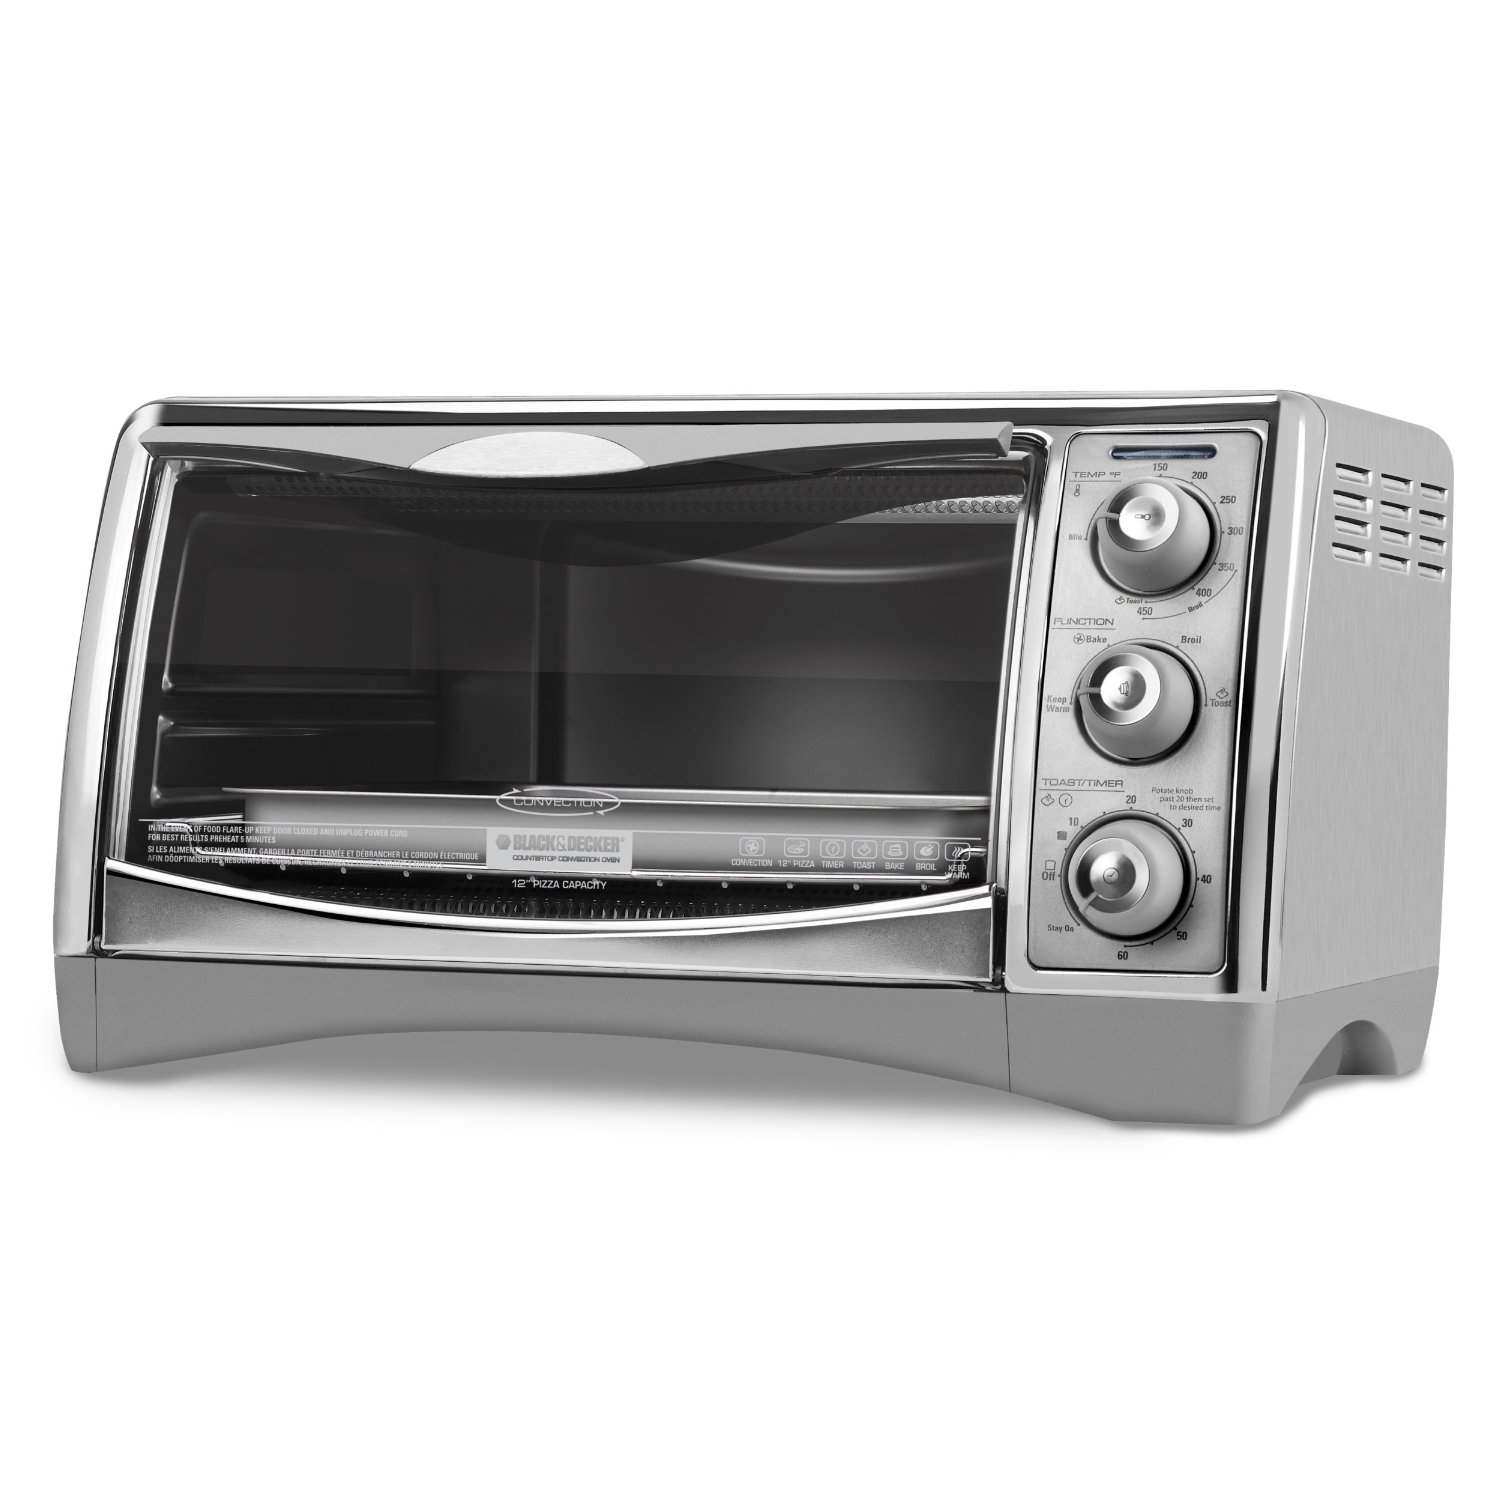 Countertop Convection Oven Ratings : cto4500s counter top convection oven by black decker convection oven